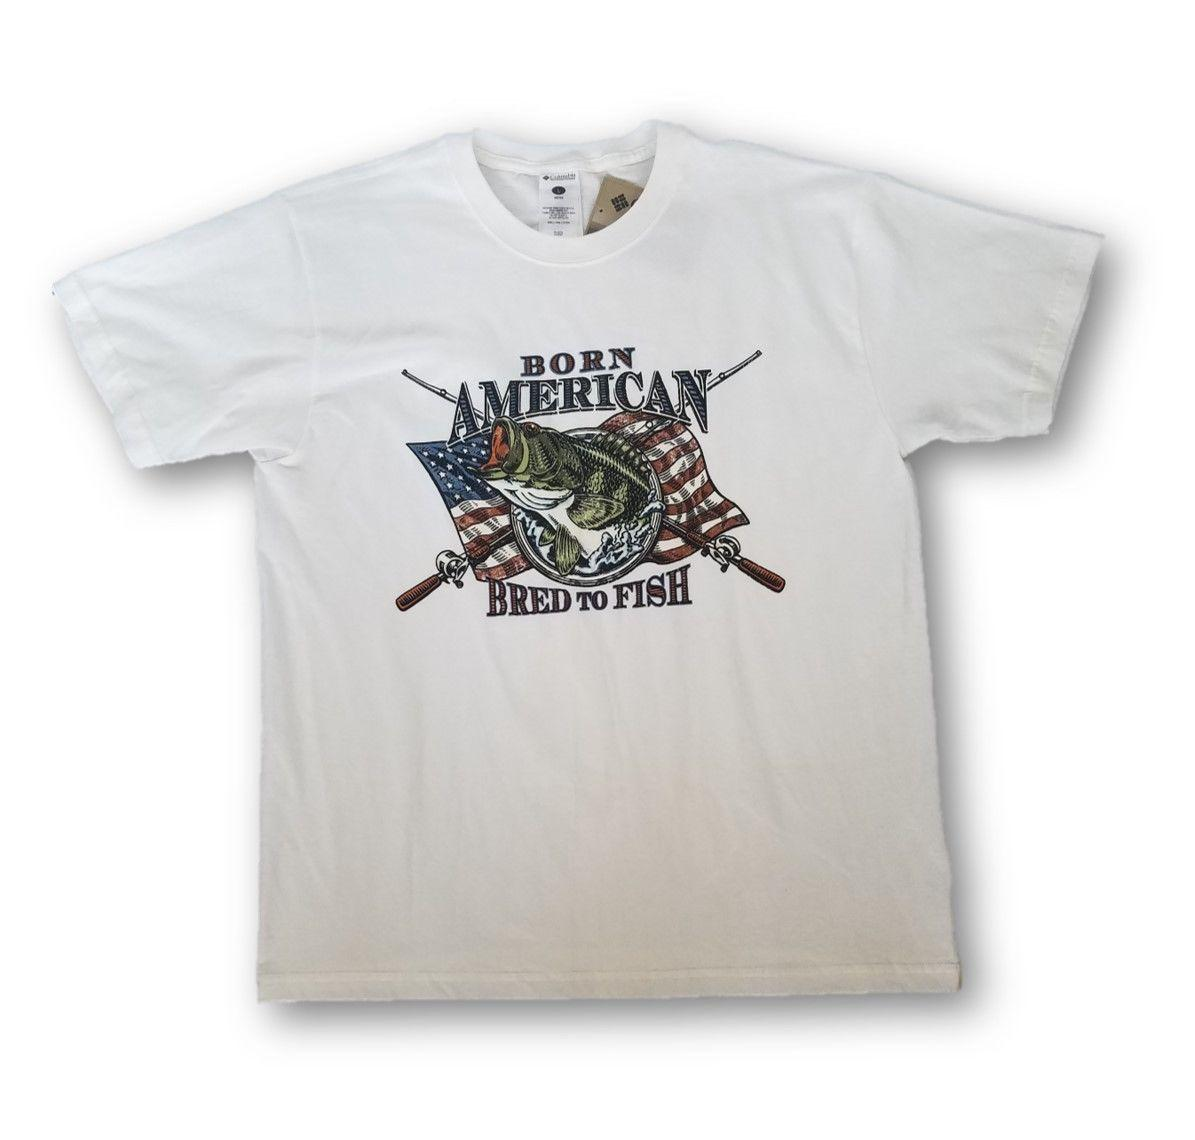 086ace5f8ac COLUMBIA MEN'S BORN AMERICAN GRAPHIC FISHING T SHIRT WHITE TEE LARGE NEW! Men'S  Clothing T Shirts Tees Men Hot Cheap Short Sleeve Vintage Tees Unique T ...